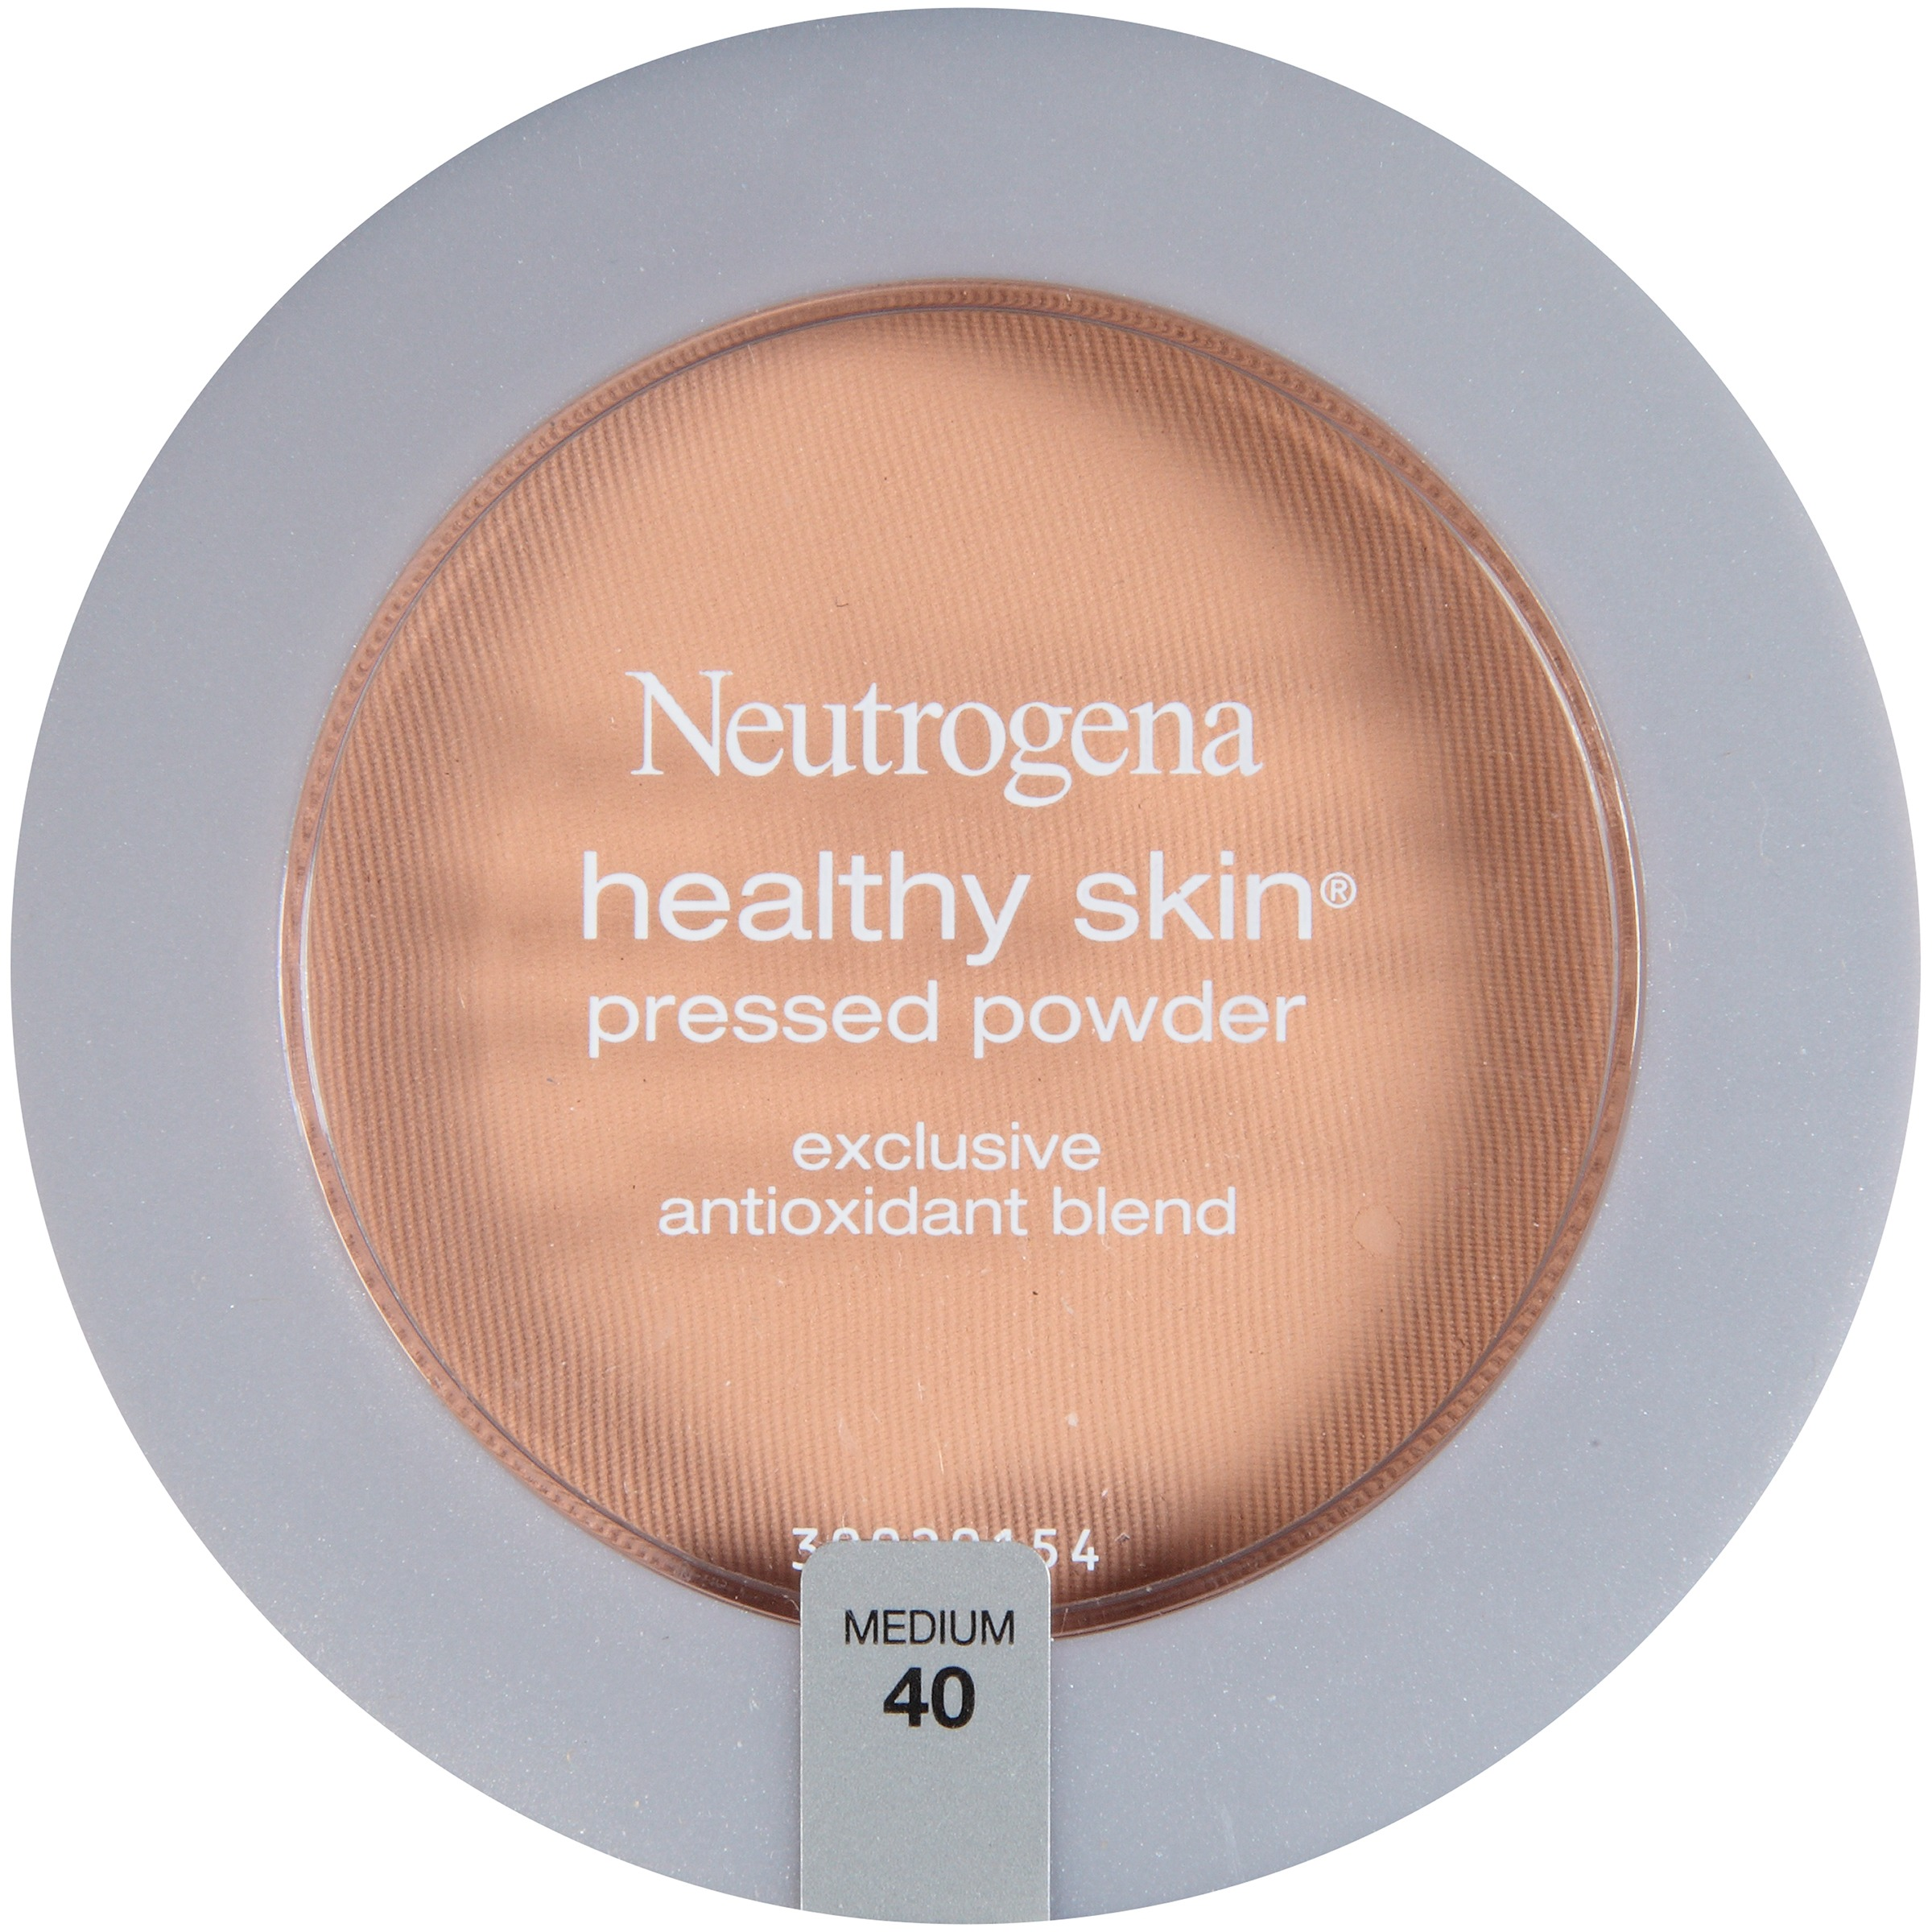 Neutrogena Healthy Skin Pressed Powder SPF 20, Medium 40, .34 Oz